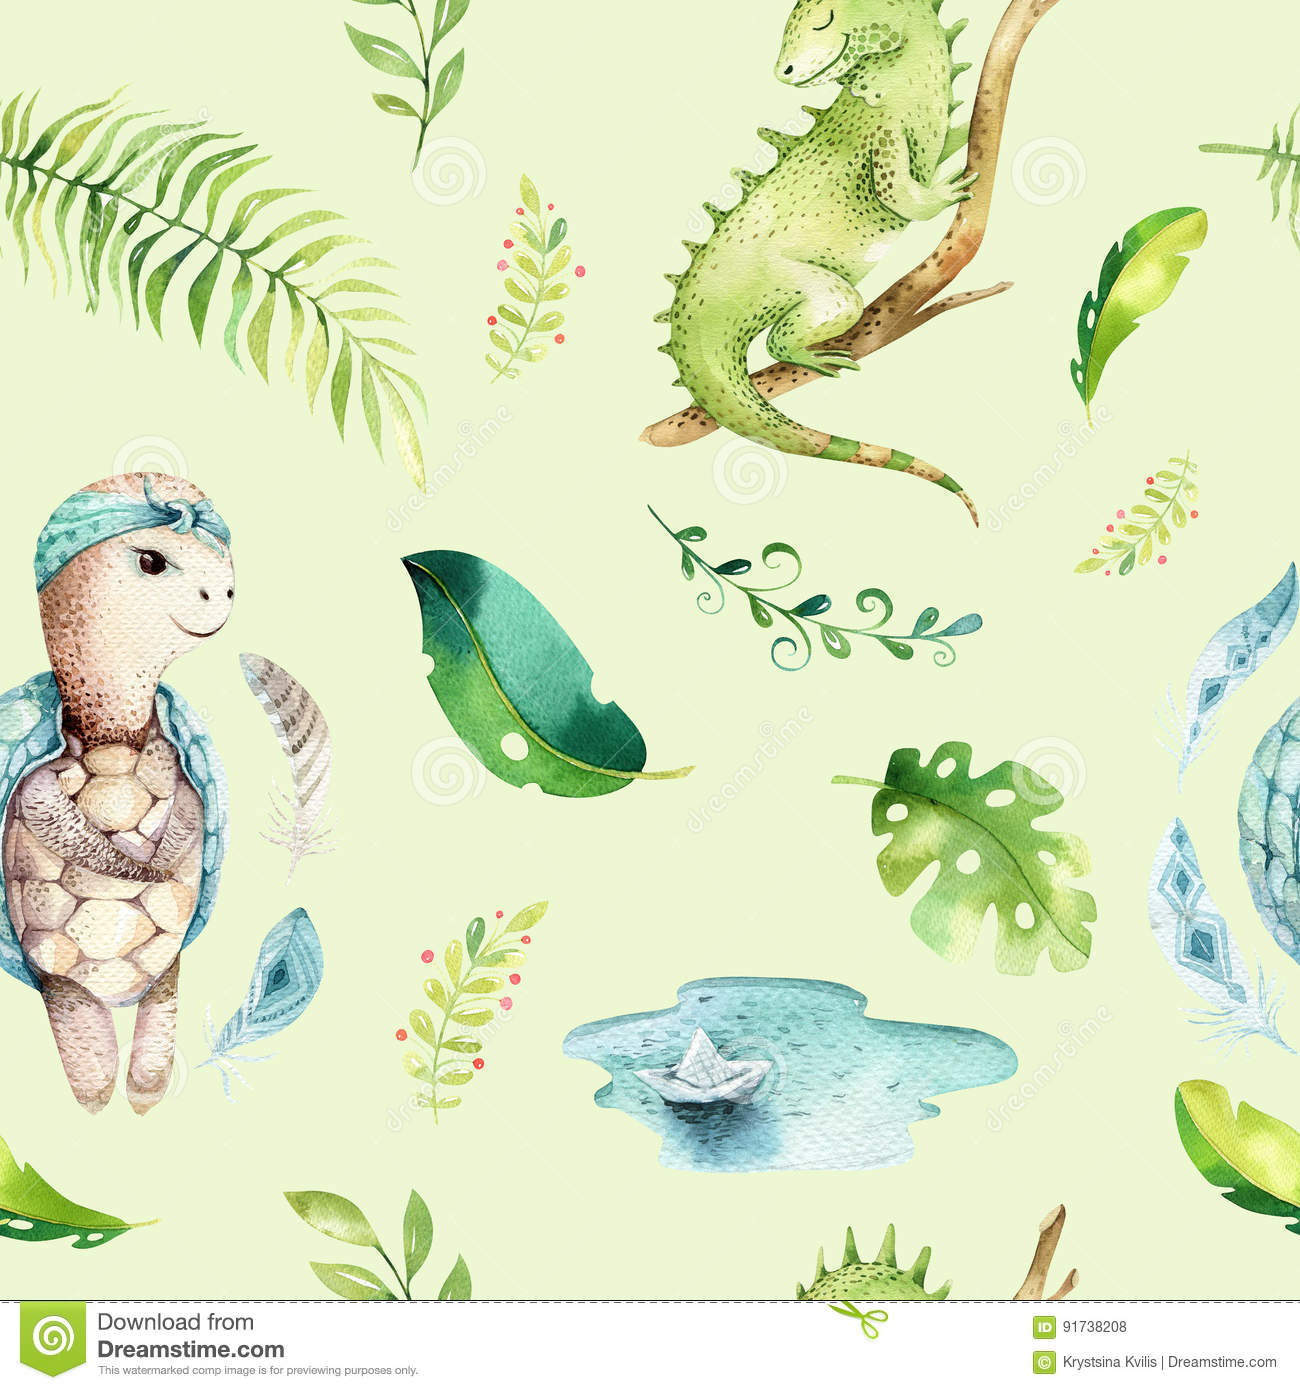 Image of: Safari Baby Animals Nursery Isolated Seamless Pattern Watercolor Boho Tropical Fabric Drawing Child Tropical Drawing Dreamstimecom Baby Animals Nursery Isolated Seamless Pattern Watercolor Boho